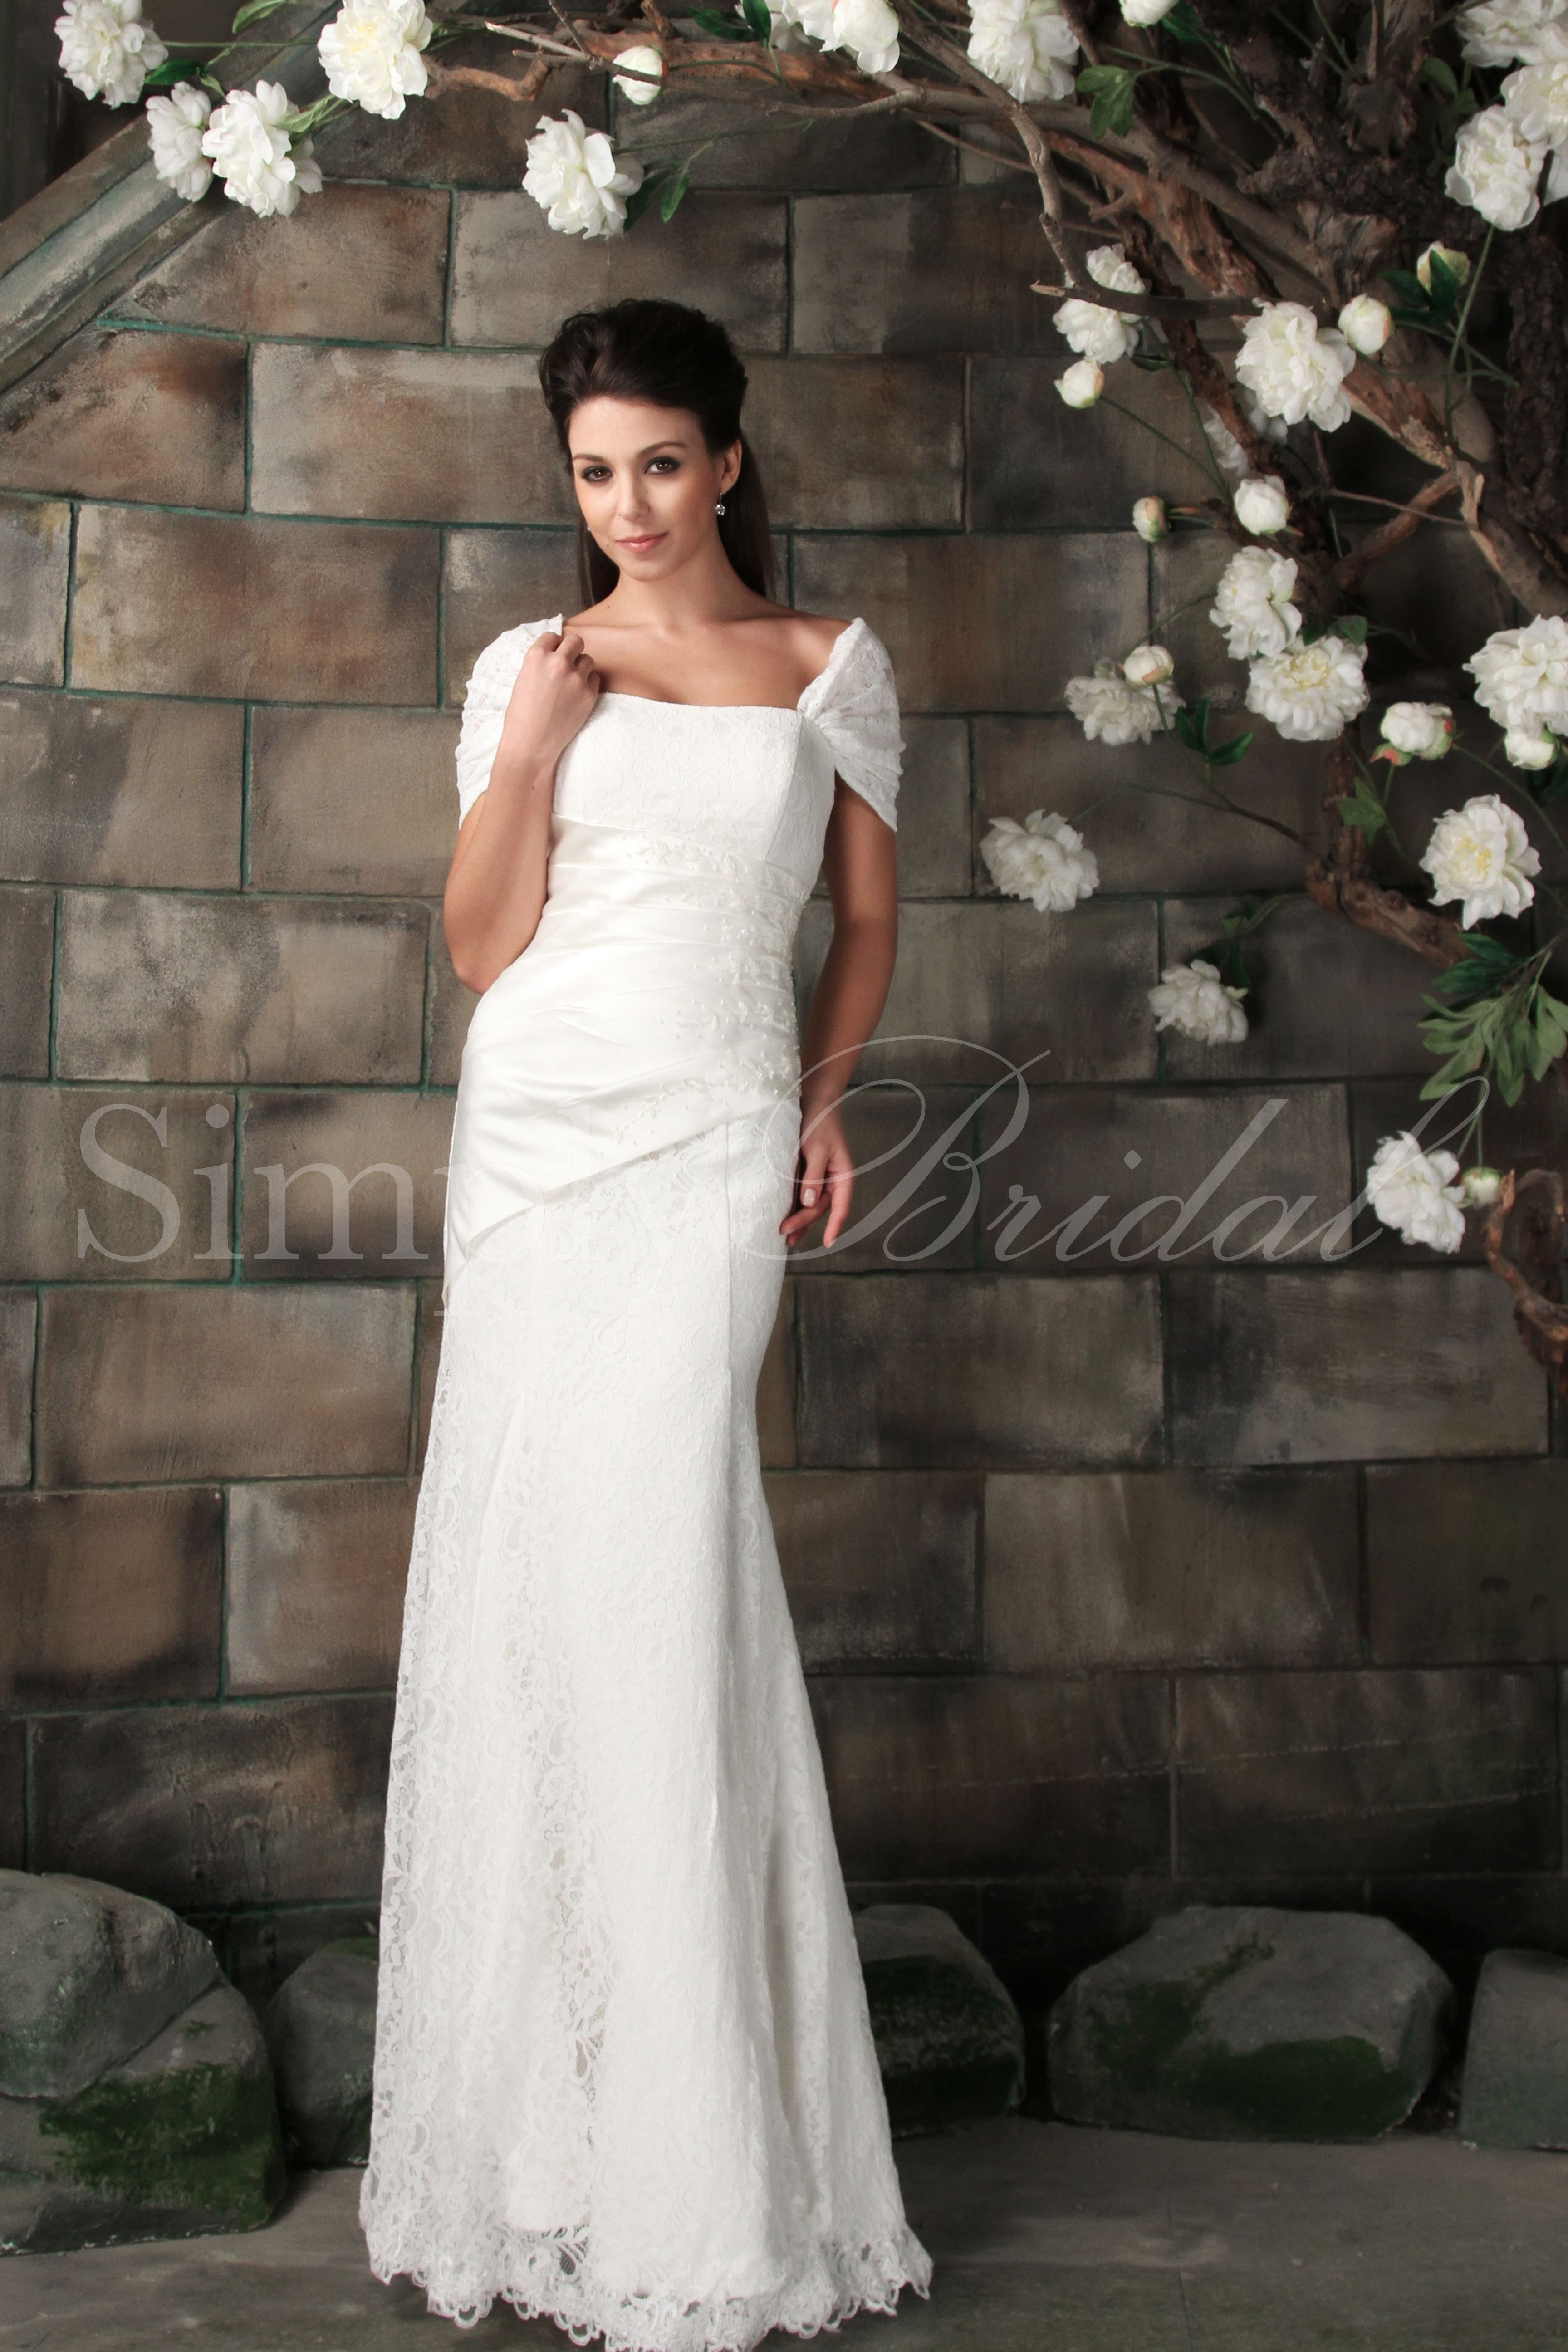 Francesca gown wedding ideas pinterest body shapes gowns and